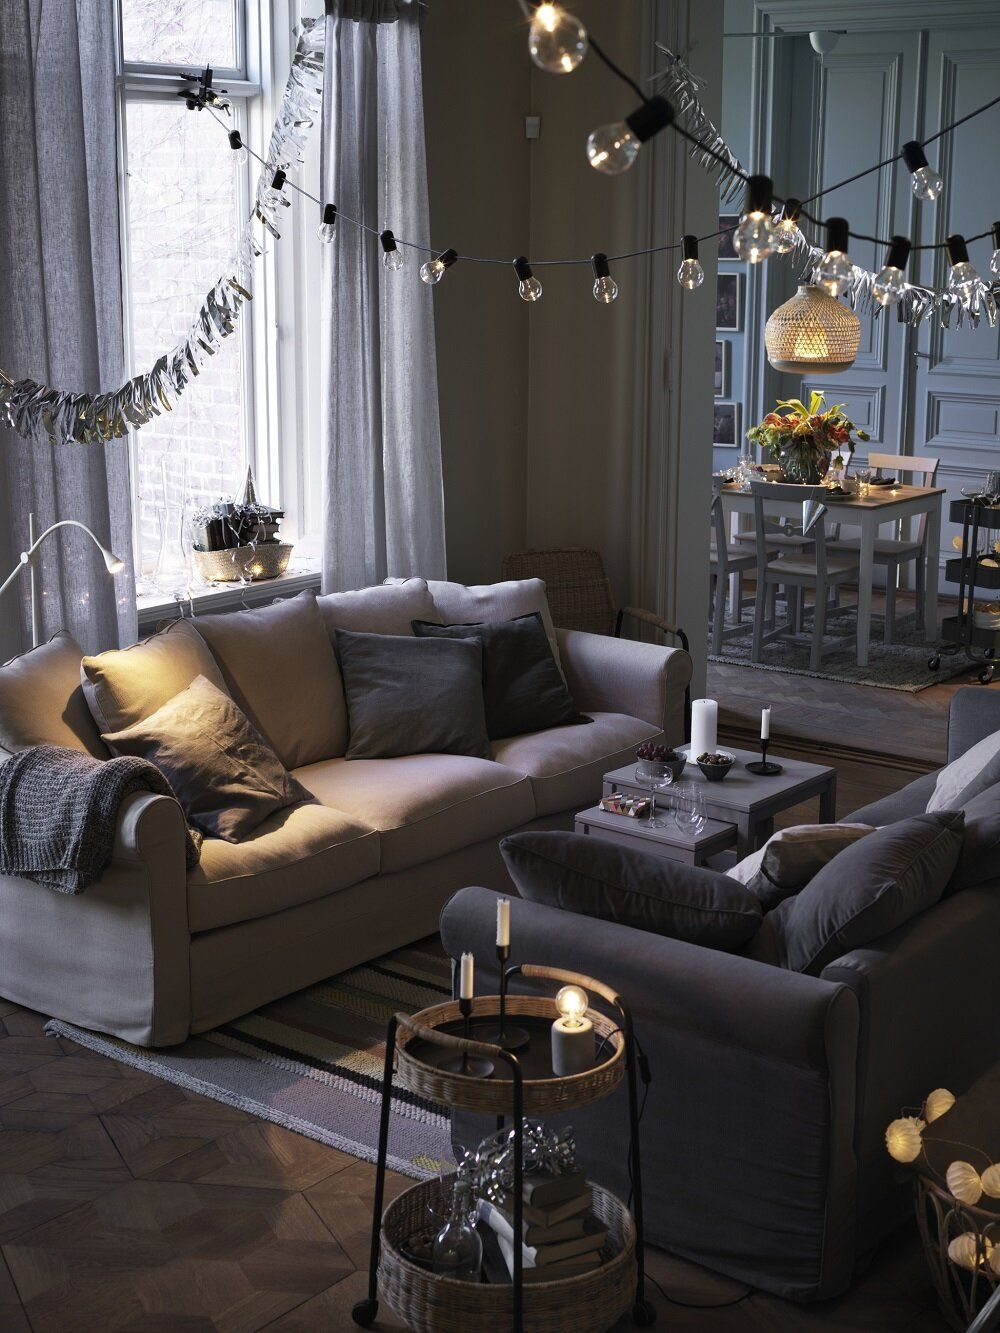 Ikea Christmas Collection 2020 Create Your Own Magical Moments The Nordroom Ikea Christmas Ikea Christmas Decorations Dream Decor